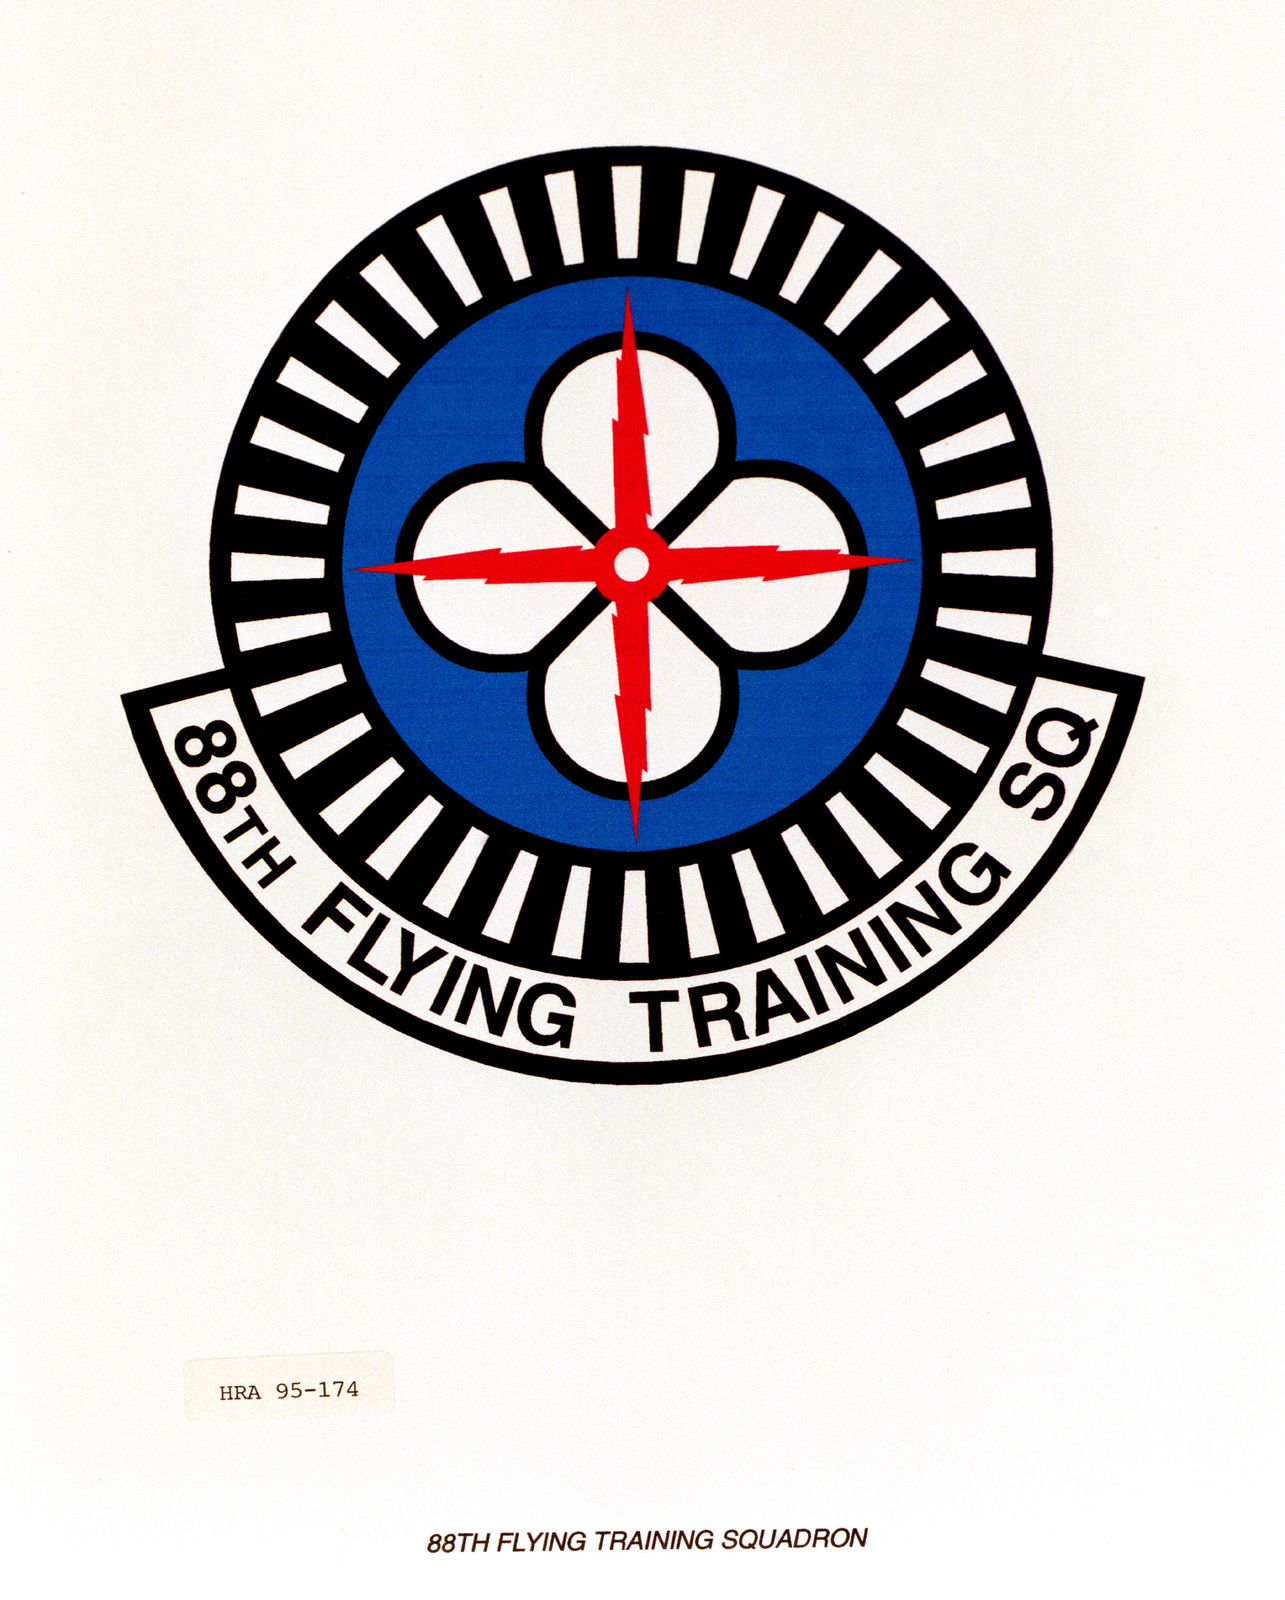 Approved Insignia for the 88th Flying Training Squadron. Exact Date Shot Unknown